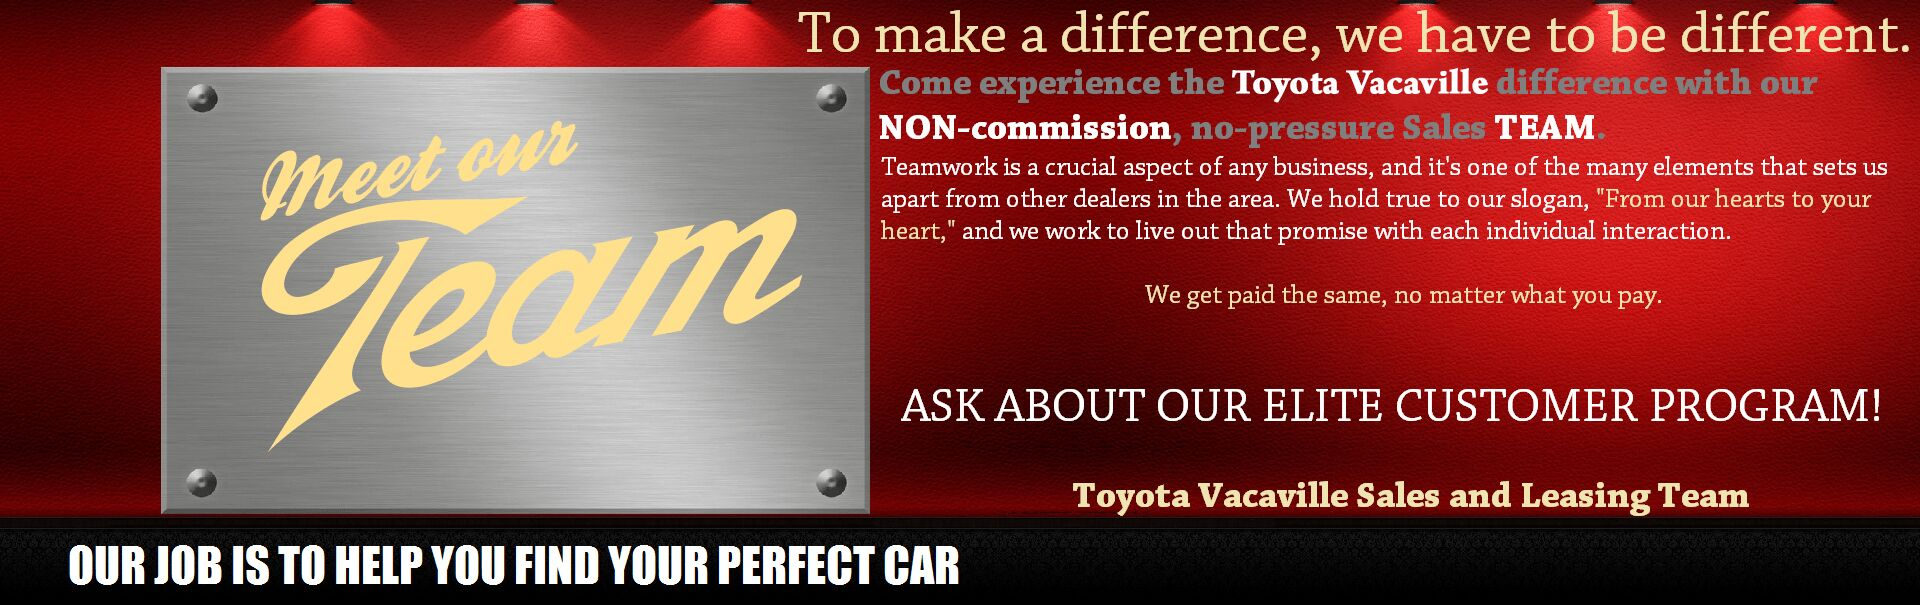 Toyota Vacaville Non-commission Team